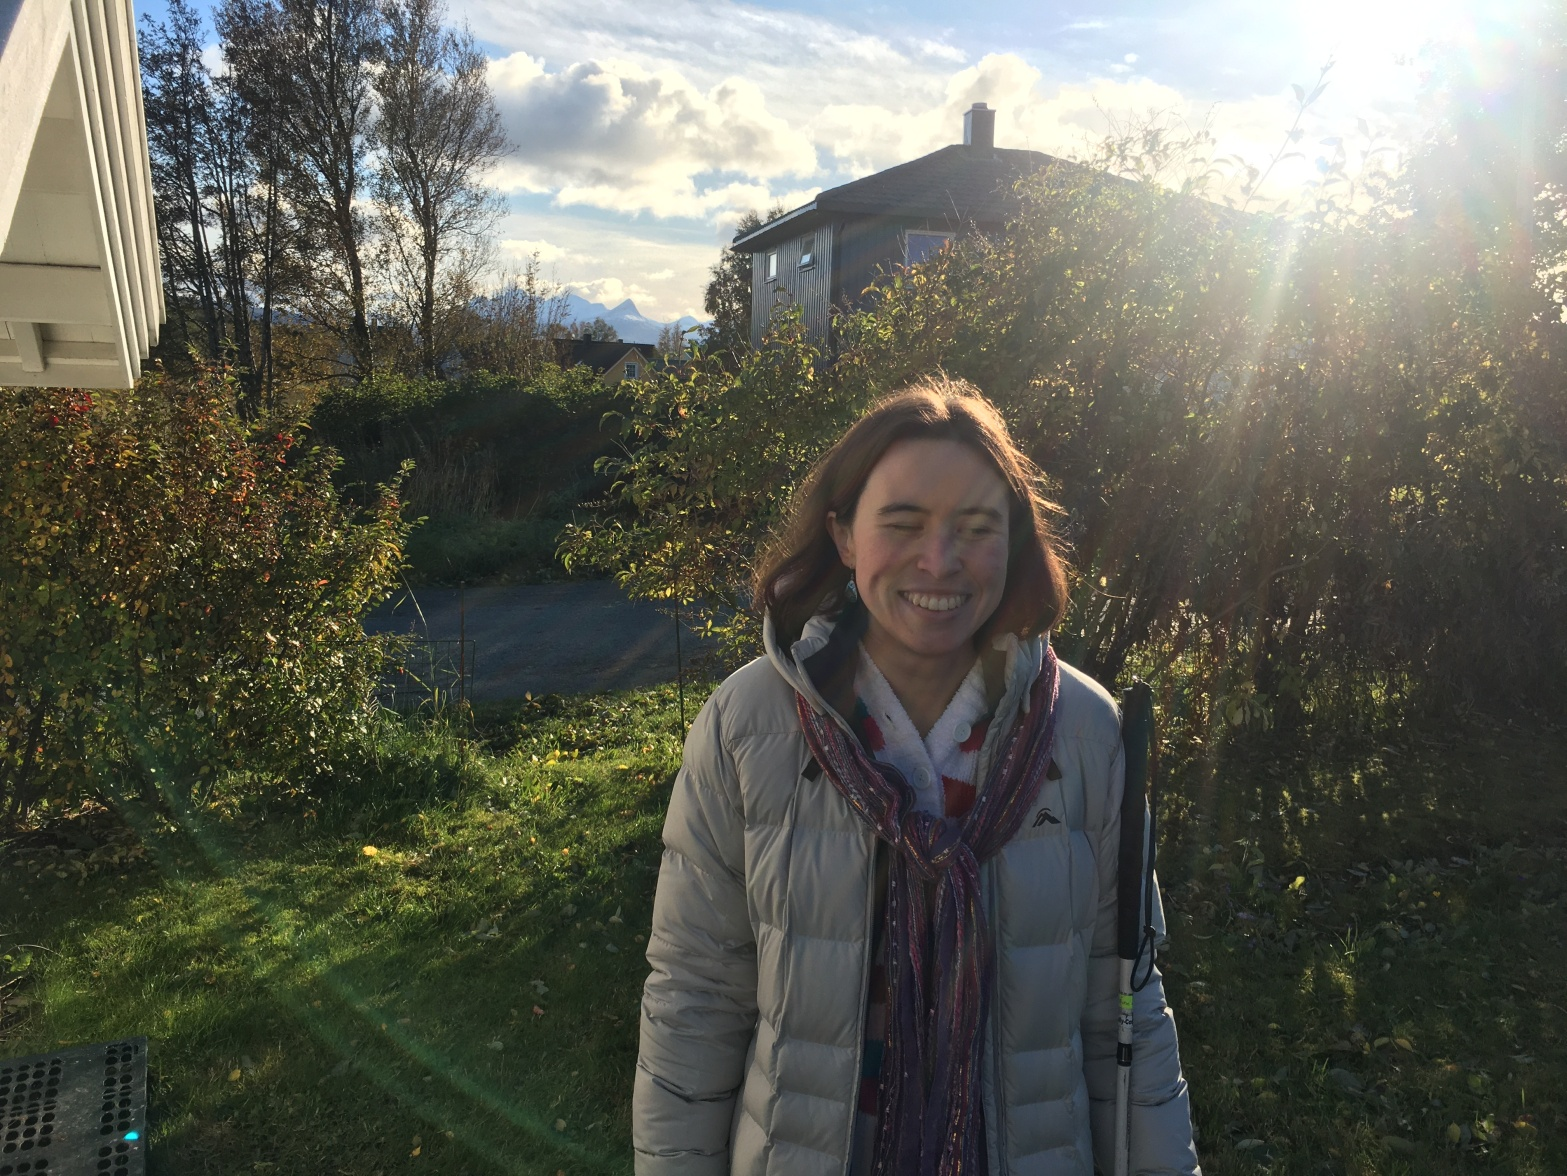 I'm standing on the grass behind my house on an autumn day, and you can see Norwegian mountains behind me. I'm a white woman with brown hair, wearing a puffy winter jacket and multi-colour scarf.